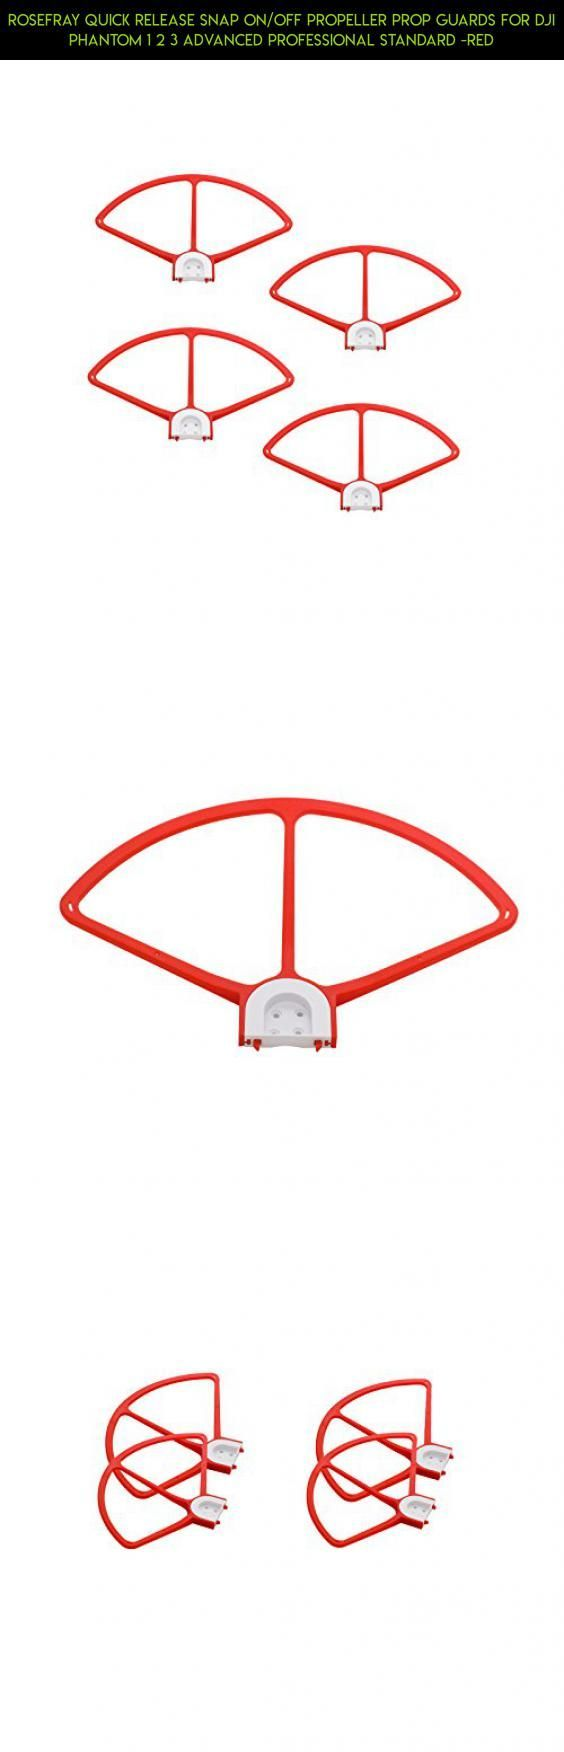 Rosefray Quick Release Snap on/off Propeller Prop Guards for DJI Phantom 1 2 3 Advanced Professional Standard -Red #technology #3 #motor #racing #fpv #dji #camera #plans #standard #shopping #tech #gadgets #phantom #kit #products #parts #drone